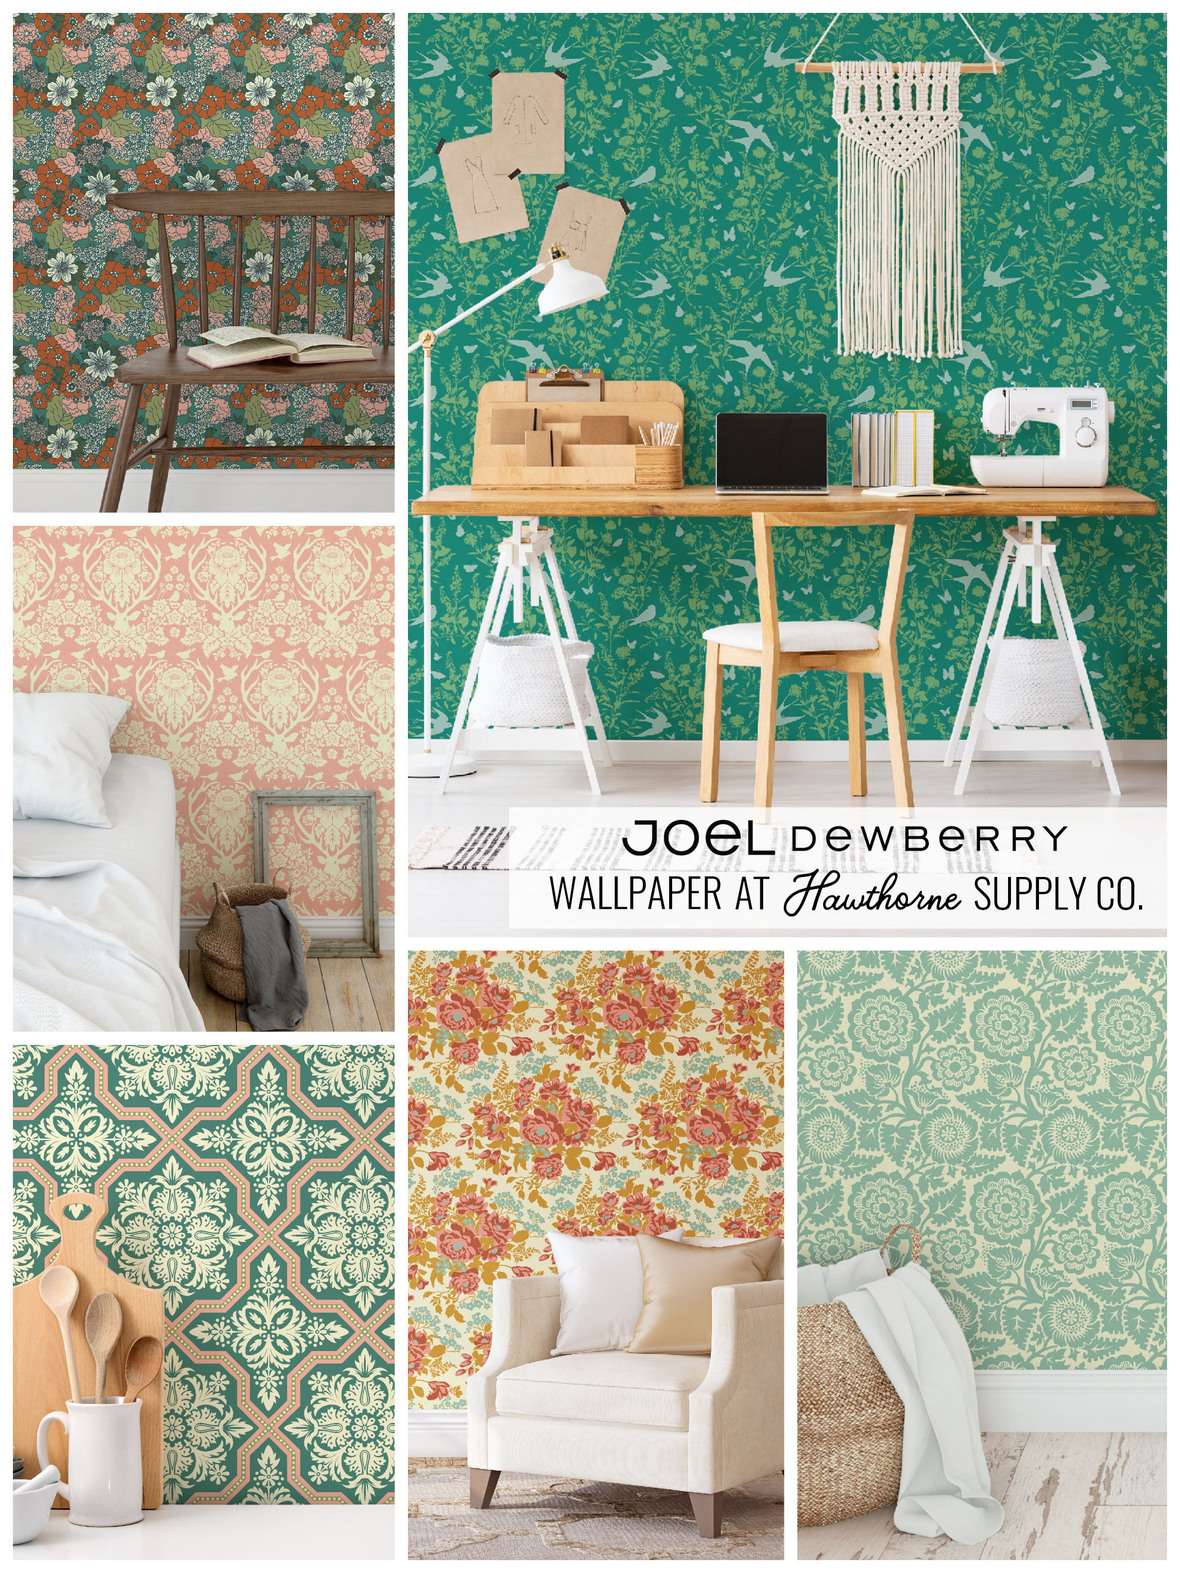 JOEL DEWBERRY WALLPAPER AT HAWTHORNE SUPPLY CO